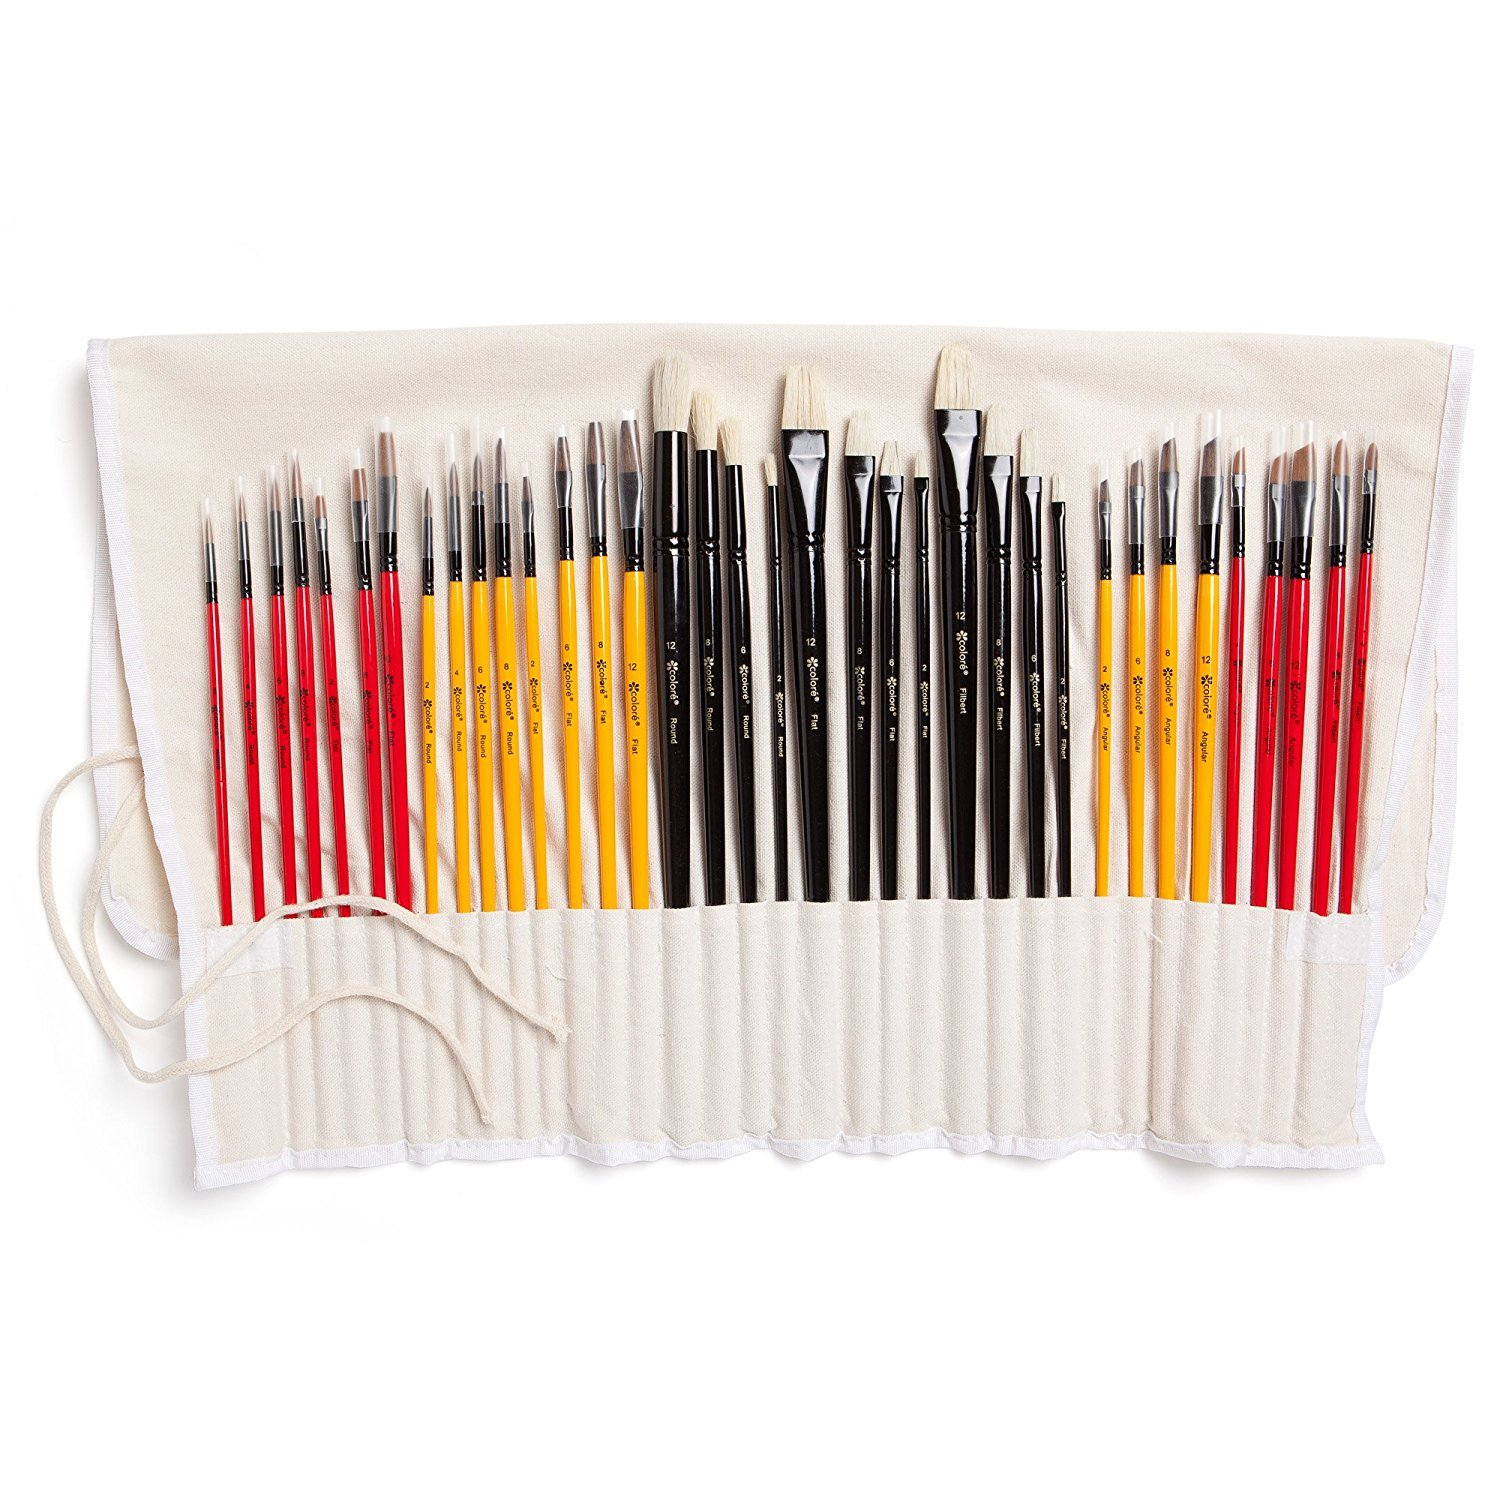 Colore Art Paint Brushes With Nylon Wrapping Case – Complete PACK of 36 Professional Grade Paint Brush Set – 12 Acrylic, 12 Oil & 12 Watercolor Paintbrushes – Lightweight and Durable Painting Supplies